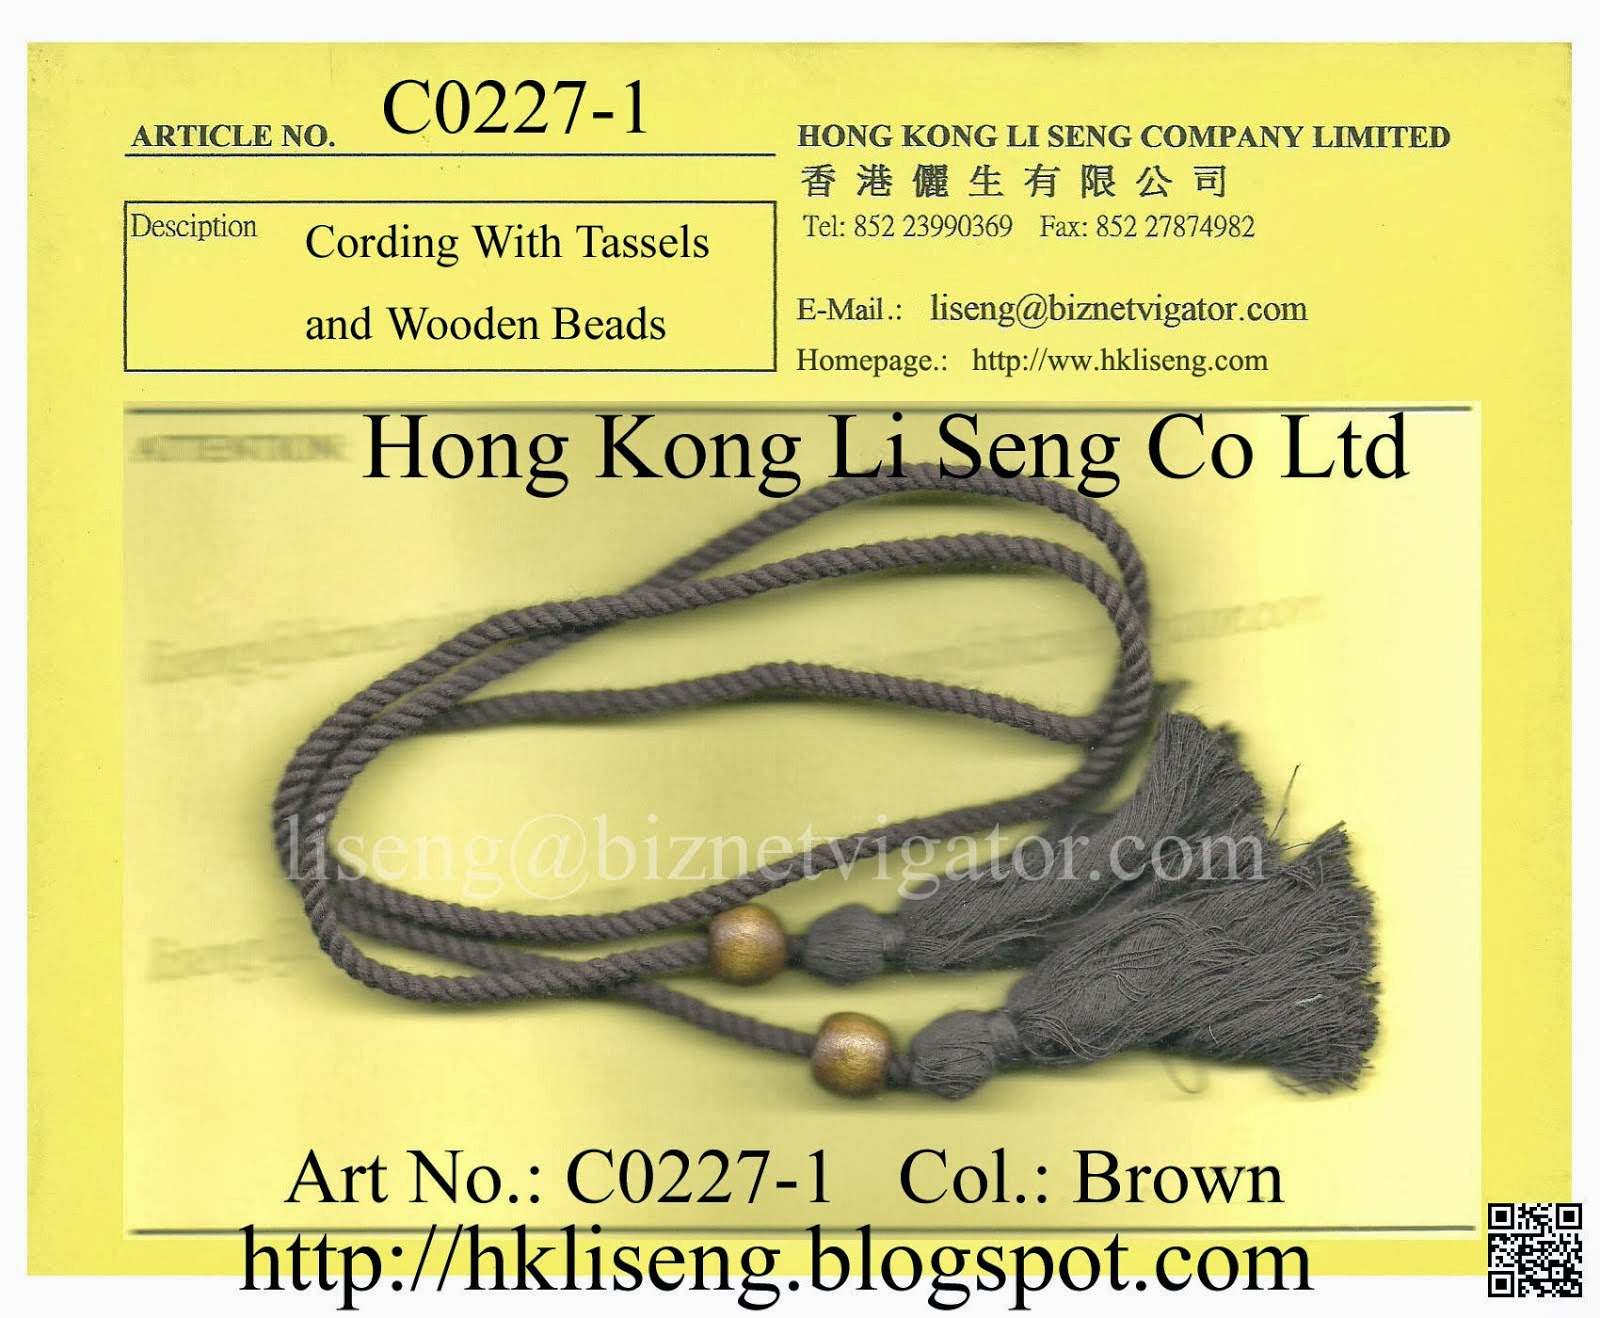 Cording With Tassels and Wooden Beads Manufacturer